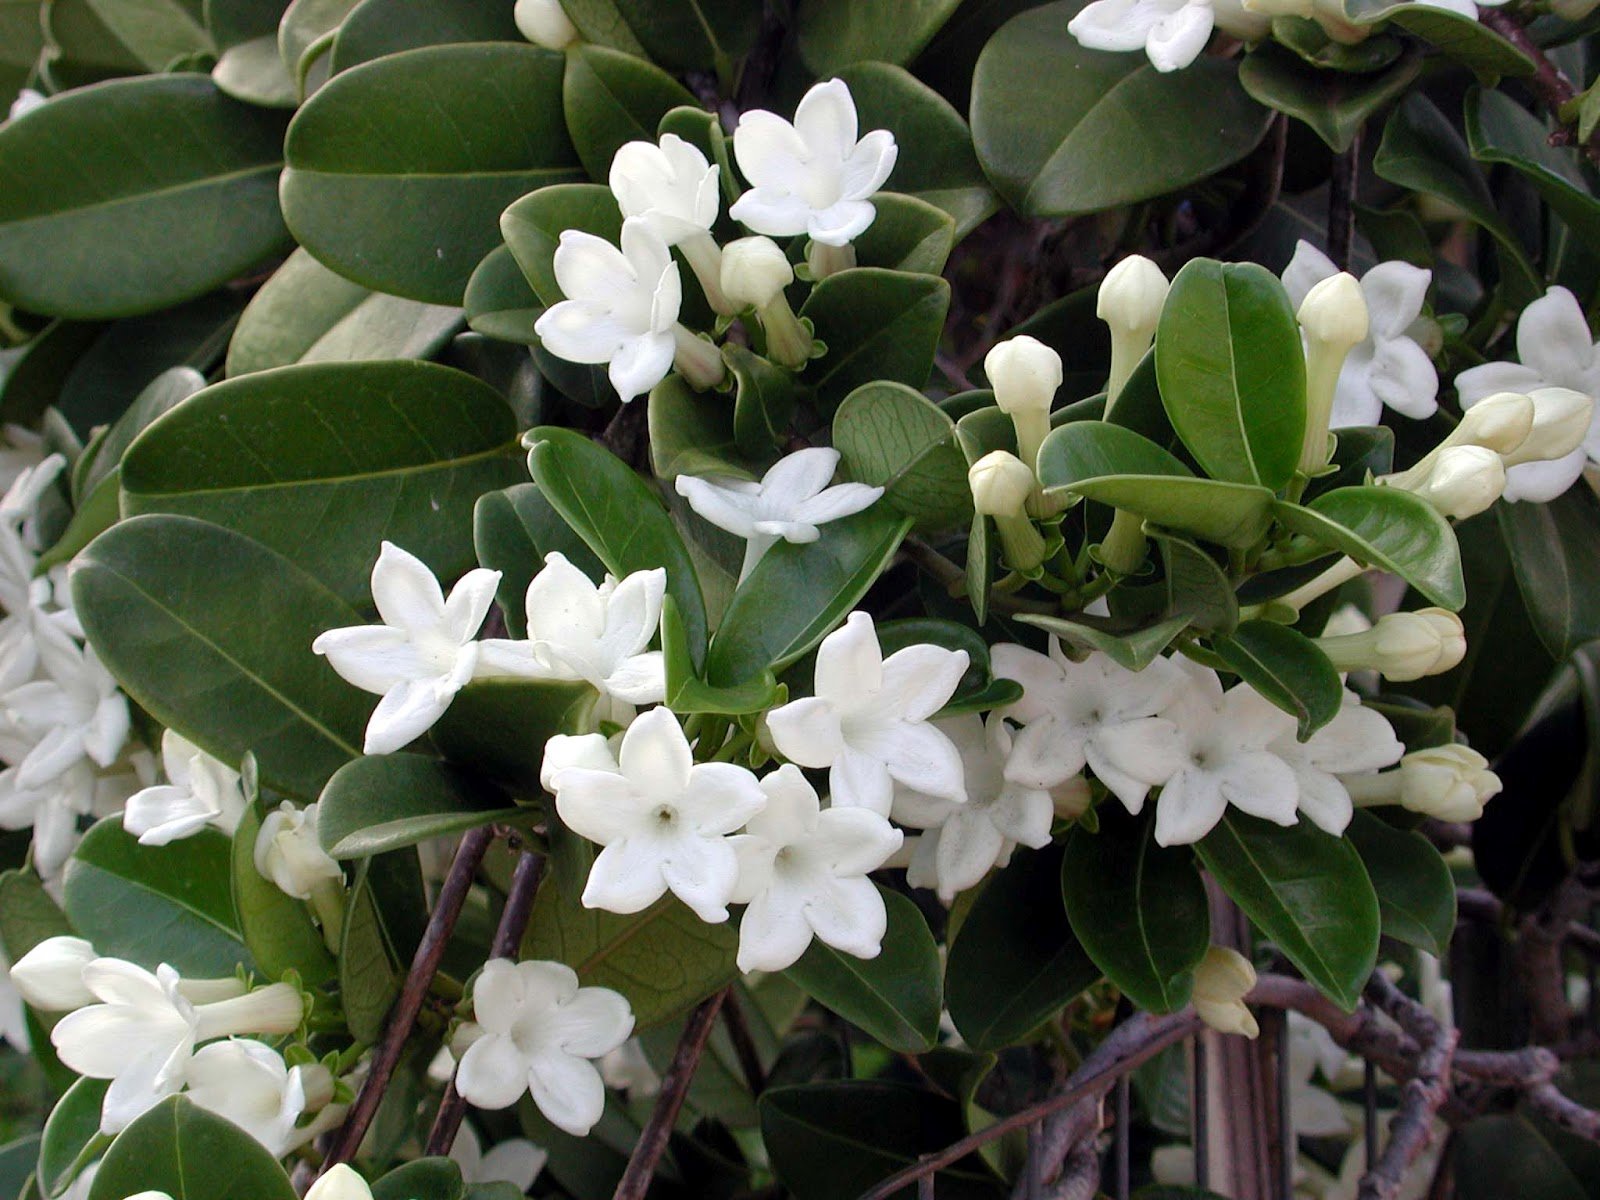 Stephanotis by any other name is marsdenia hawaii horticulture stephanotis by any other name is marsdenia izmirmasajfo